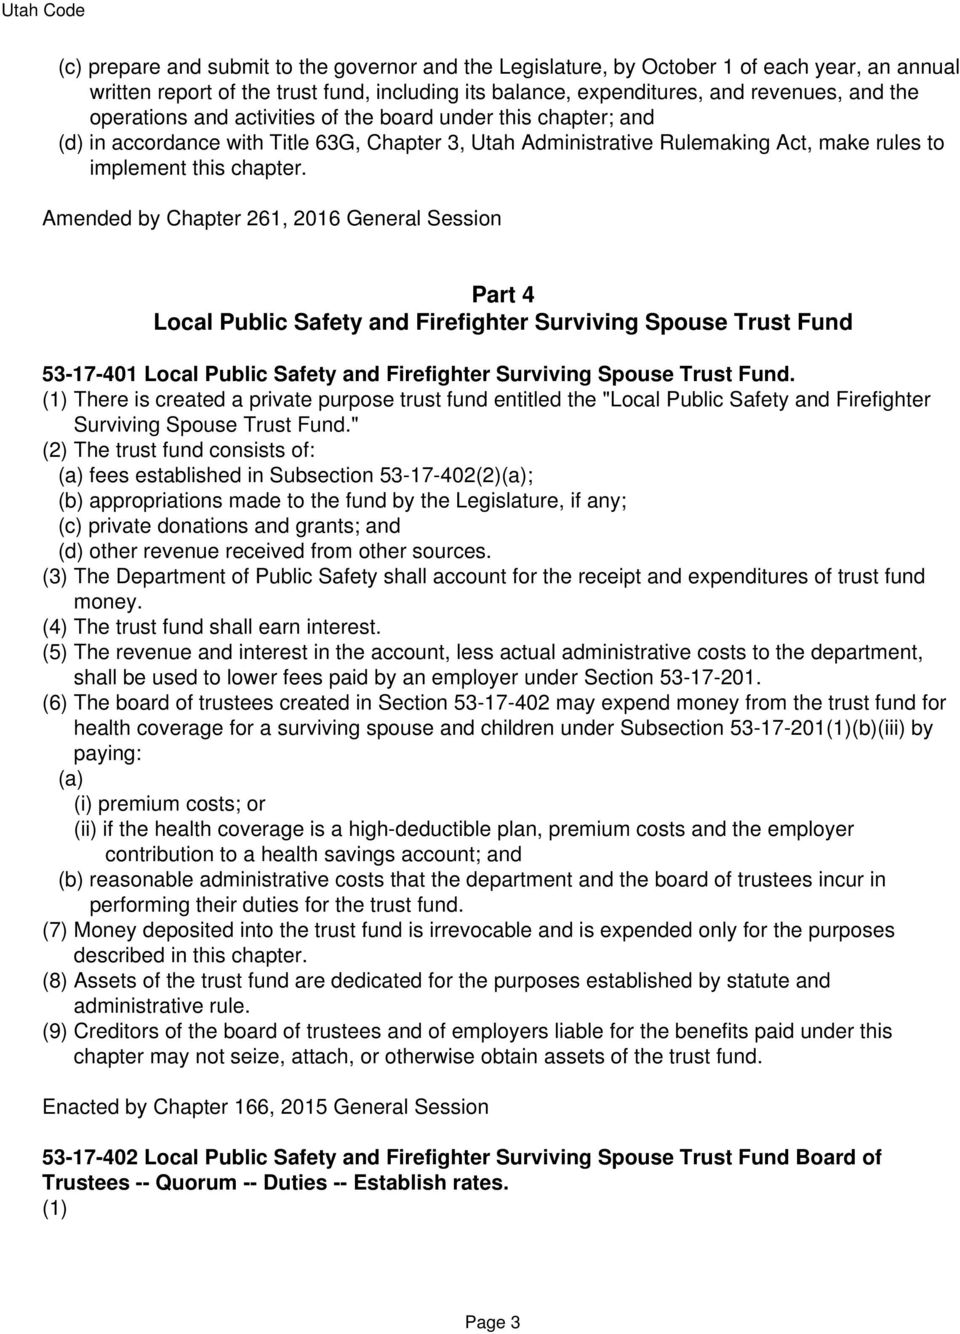 Amended by Chapter 261, 2016 General Session Part 4 Local Public Safety and Firefighter Surviving Spouse Trust Fund 53-17-401 Local Public Safety and Firefighter Surviving Spouse Trust Fund.